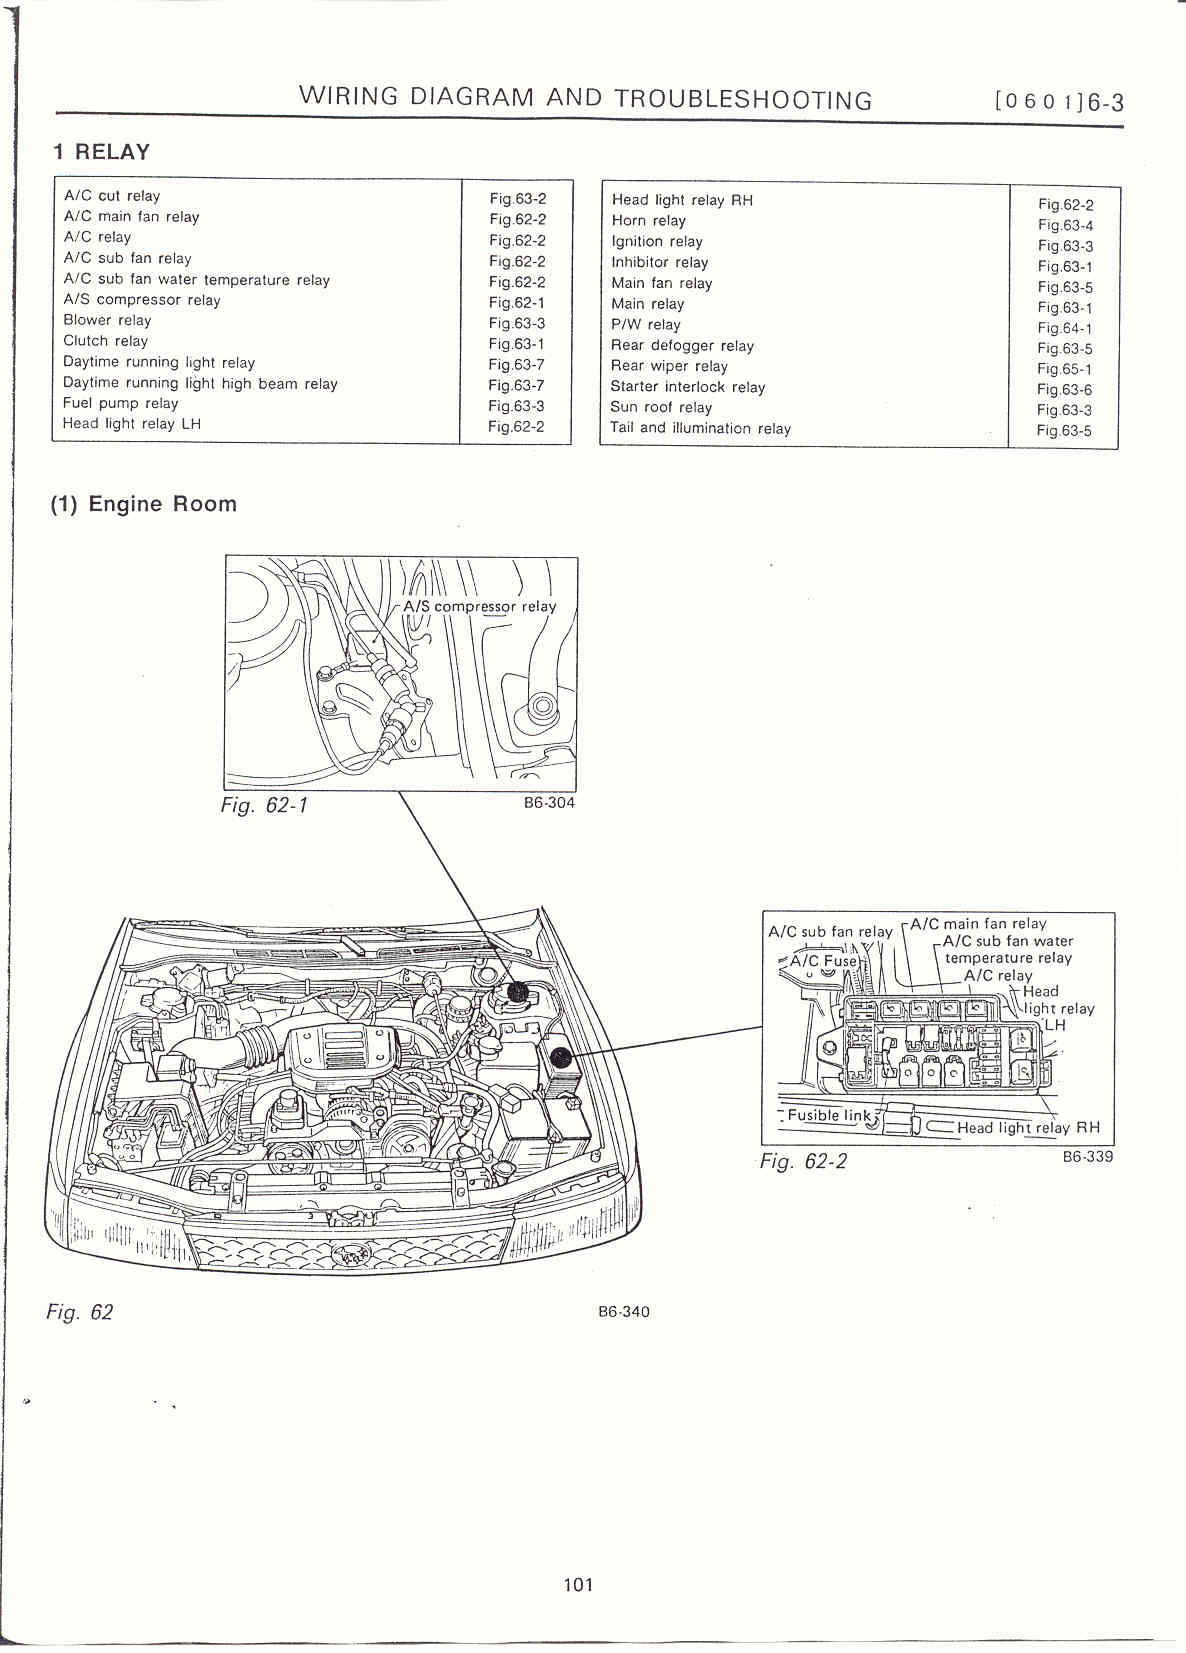 1997 Subaru Fuse Box Diagram • Wiring Diagram For Free